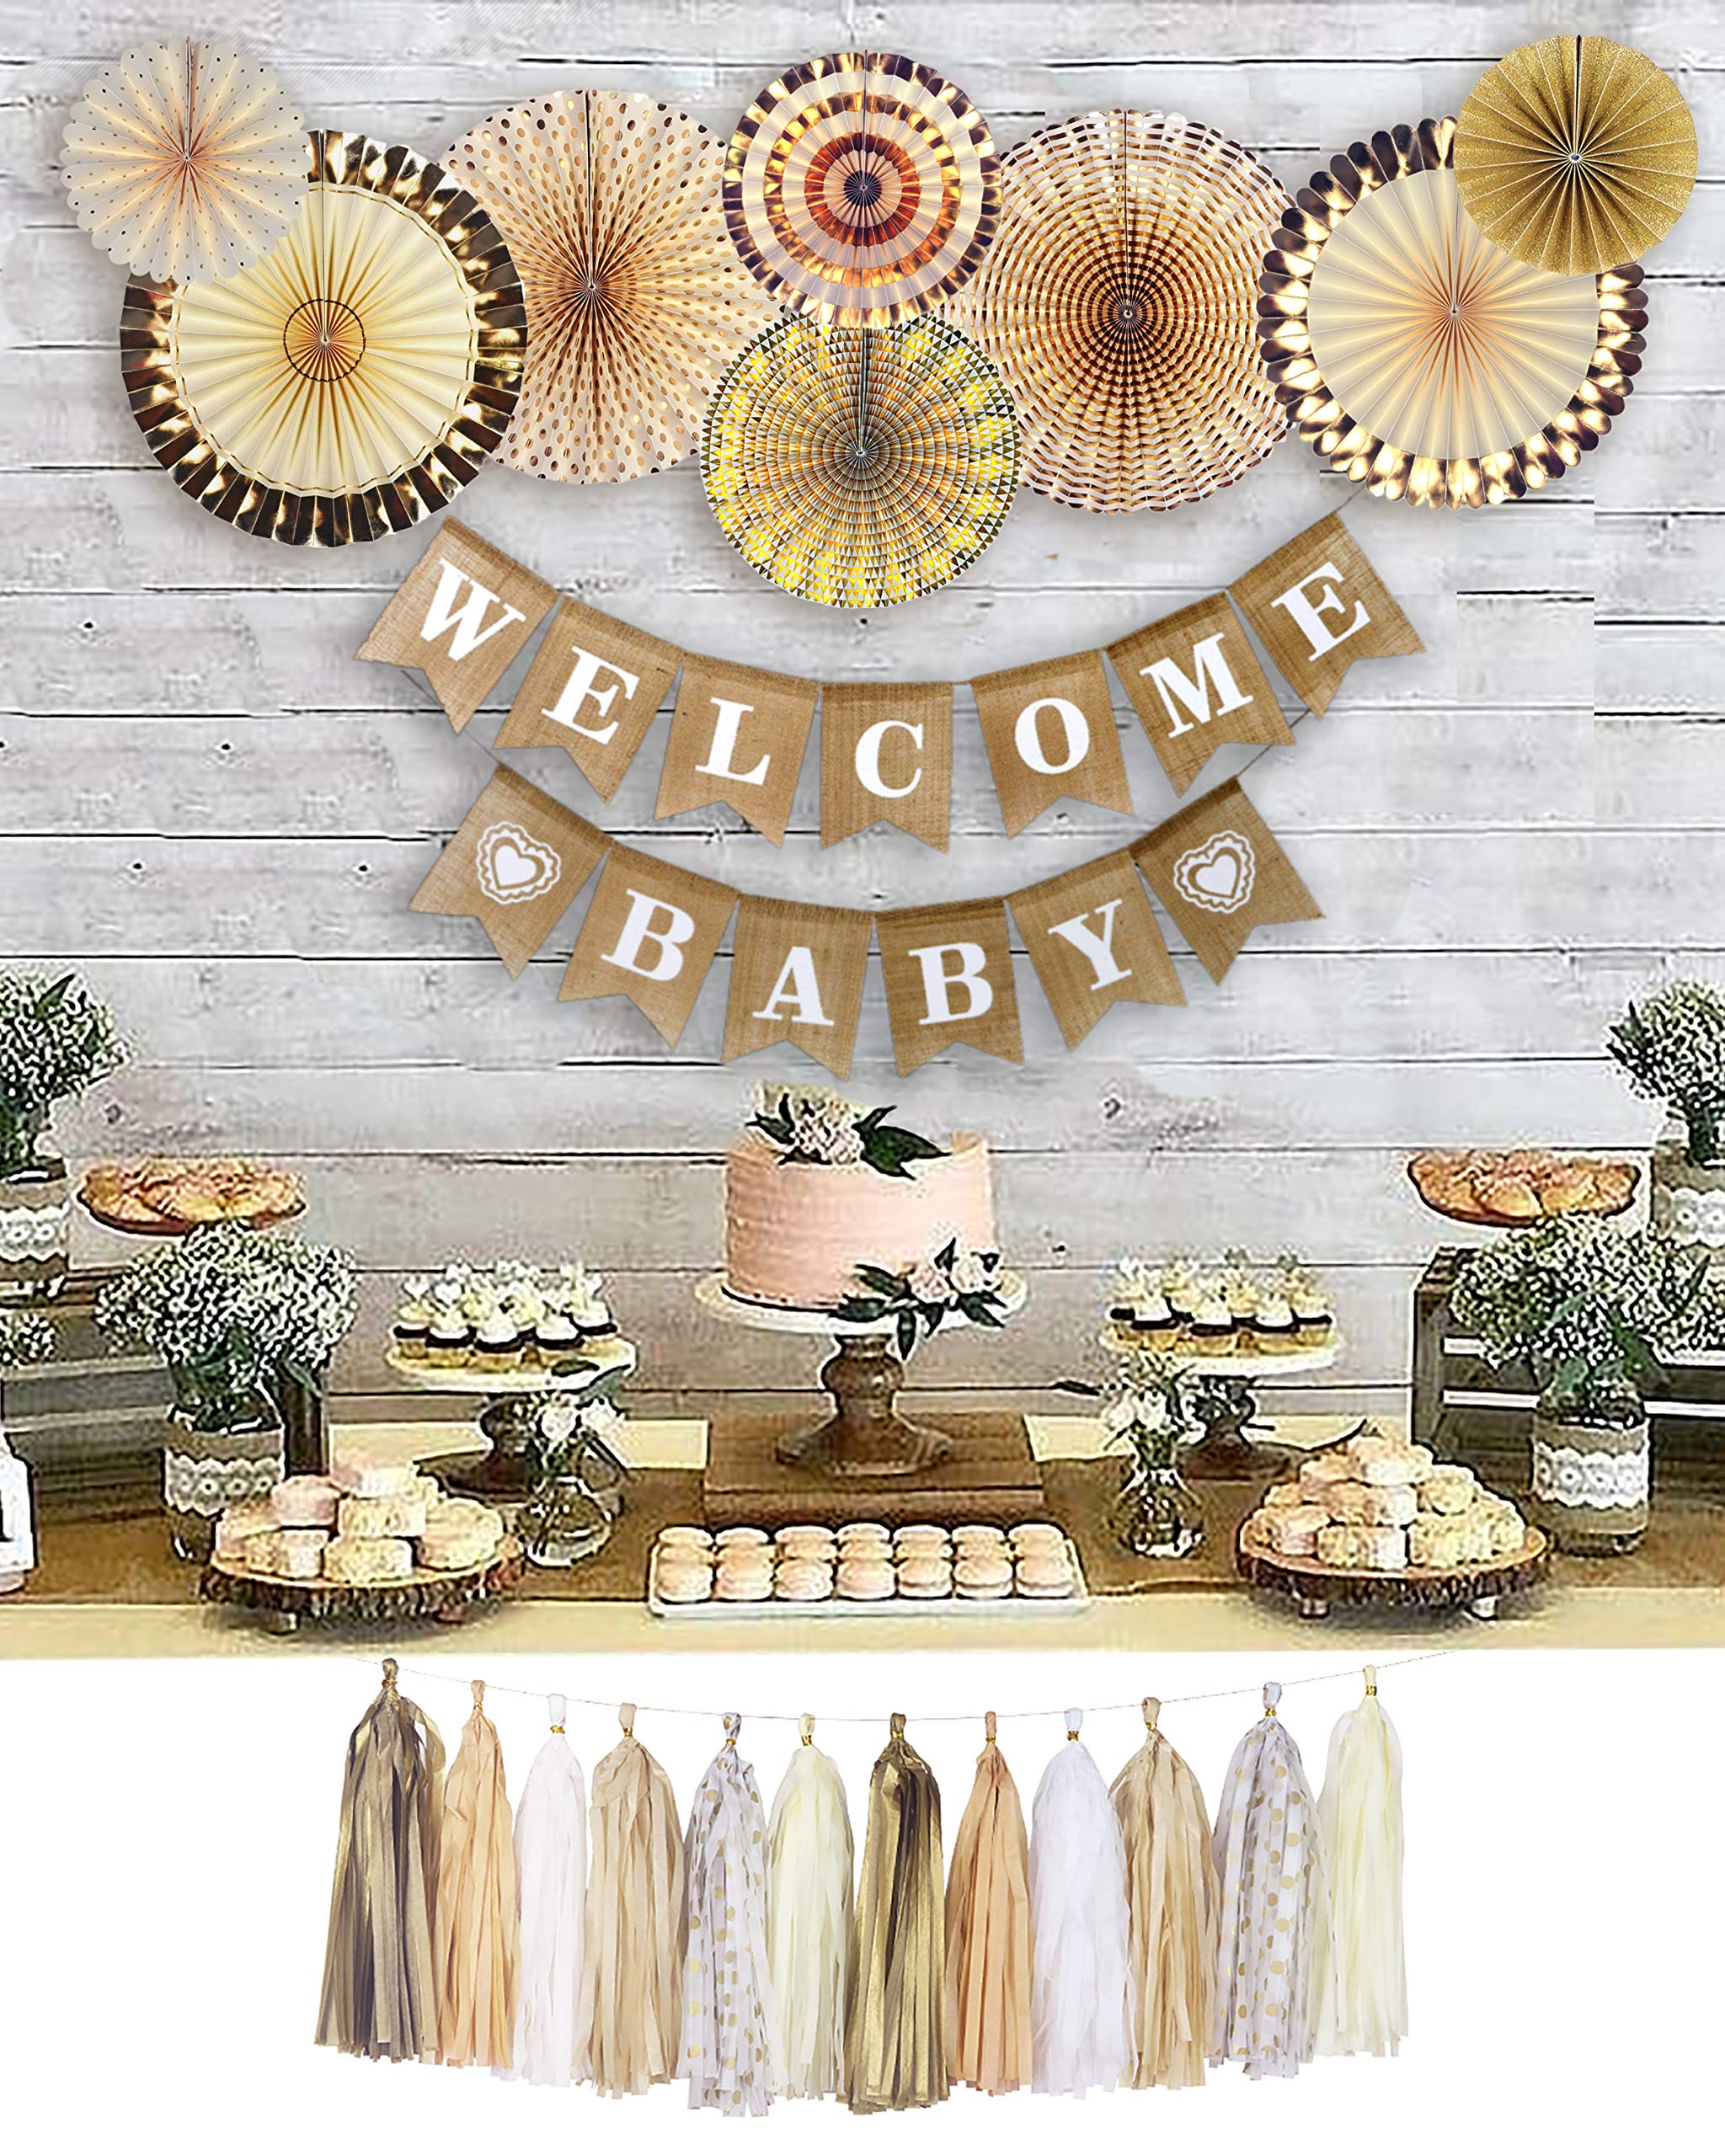 YARA Neutral Baby Shower Decorations for Coed, Unisex, Boy or Girl, Rustic Welcome Baby Banner in Burlap, Tassels, Gold and White Gender Neutral Baby Shower Decor Set, Gold Paper Fans Decorations by Yara Enterprises (Image #1)